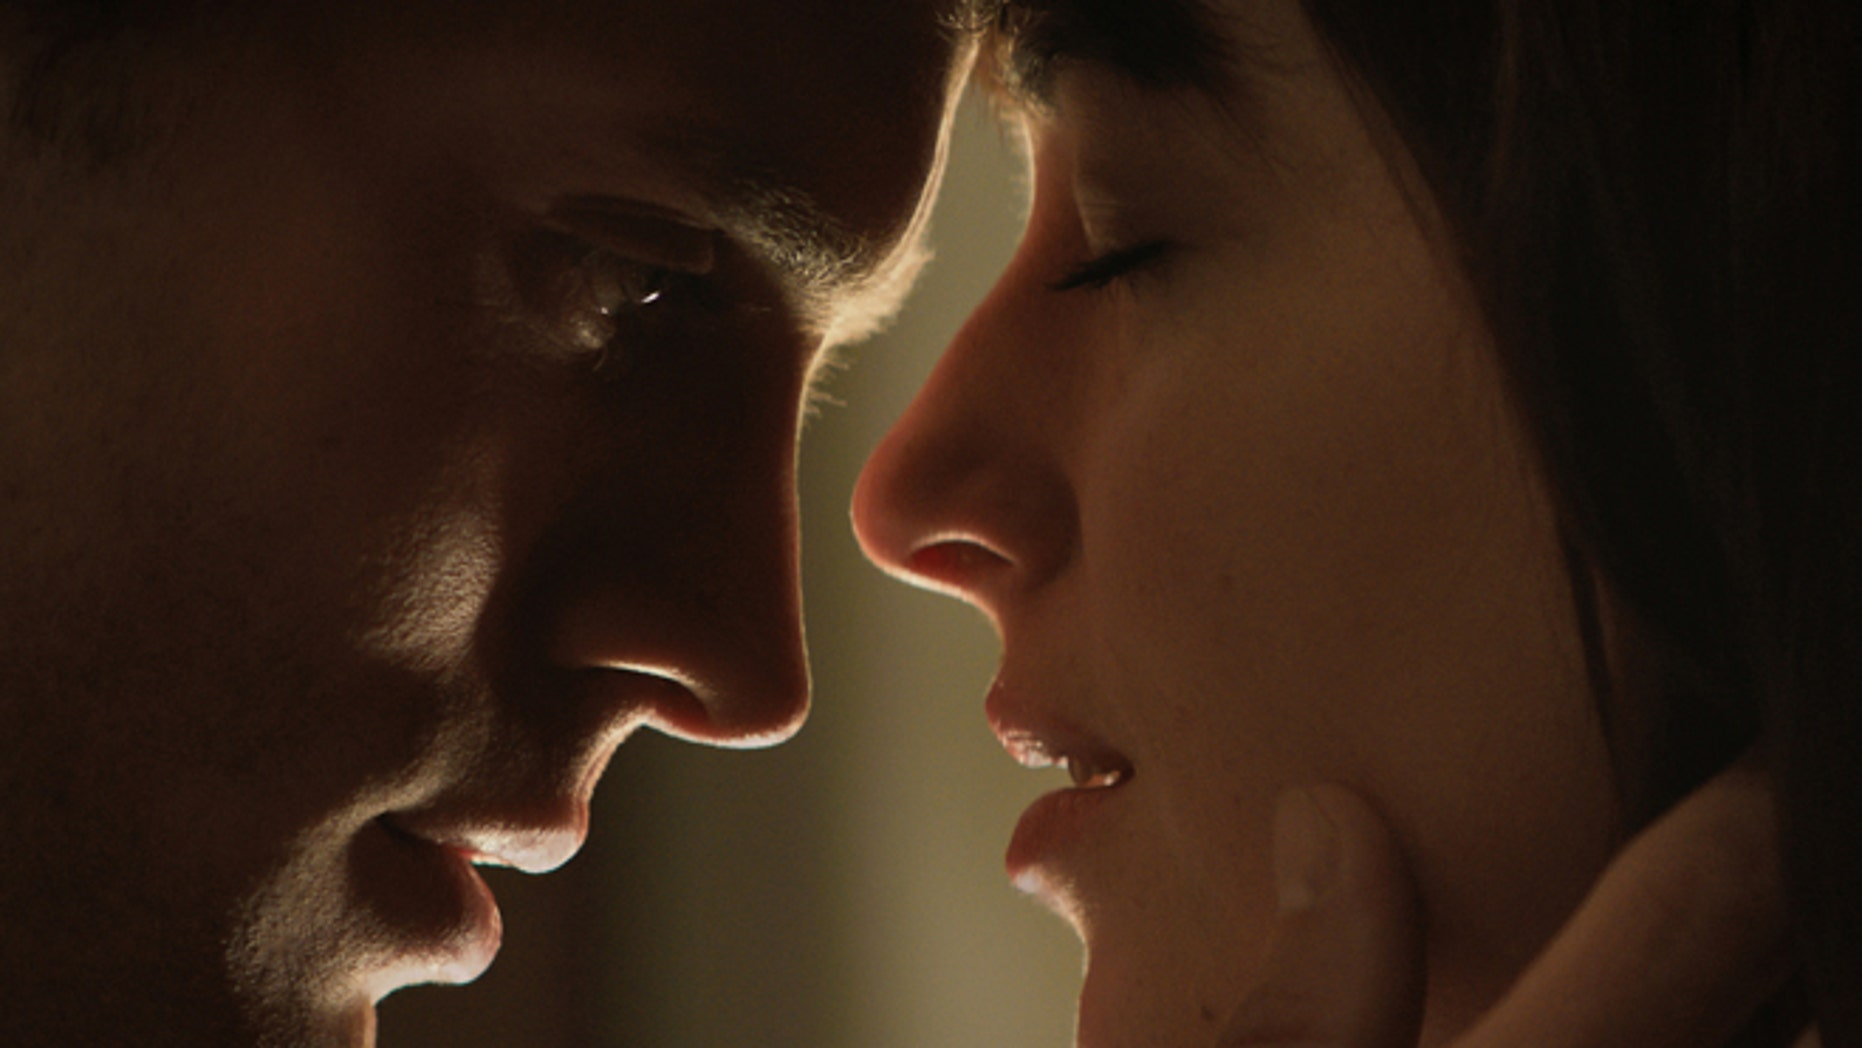 """In this image released by Universal Pictures and Focus Features, Jamie Dornan, left, and Dakota Johnson appear in a scene from """"Fifty Shades of Grey."""" The ticket-buying site Fandango said pre-sales have propelled the movie into the 15-year-old company's Top 5 for R-rated selections. Several hundred screenings have already sold out from Tupelo, Mississippi, to Chattanooga, Tennessee, the company said. (AP Photo/Universal Pictures and Focus Features)"""